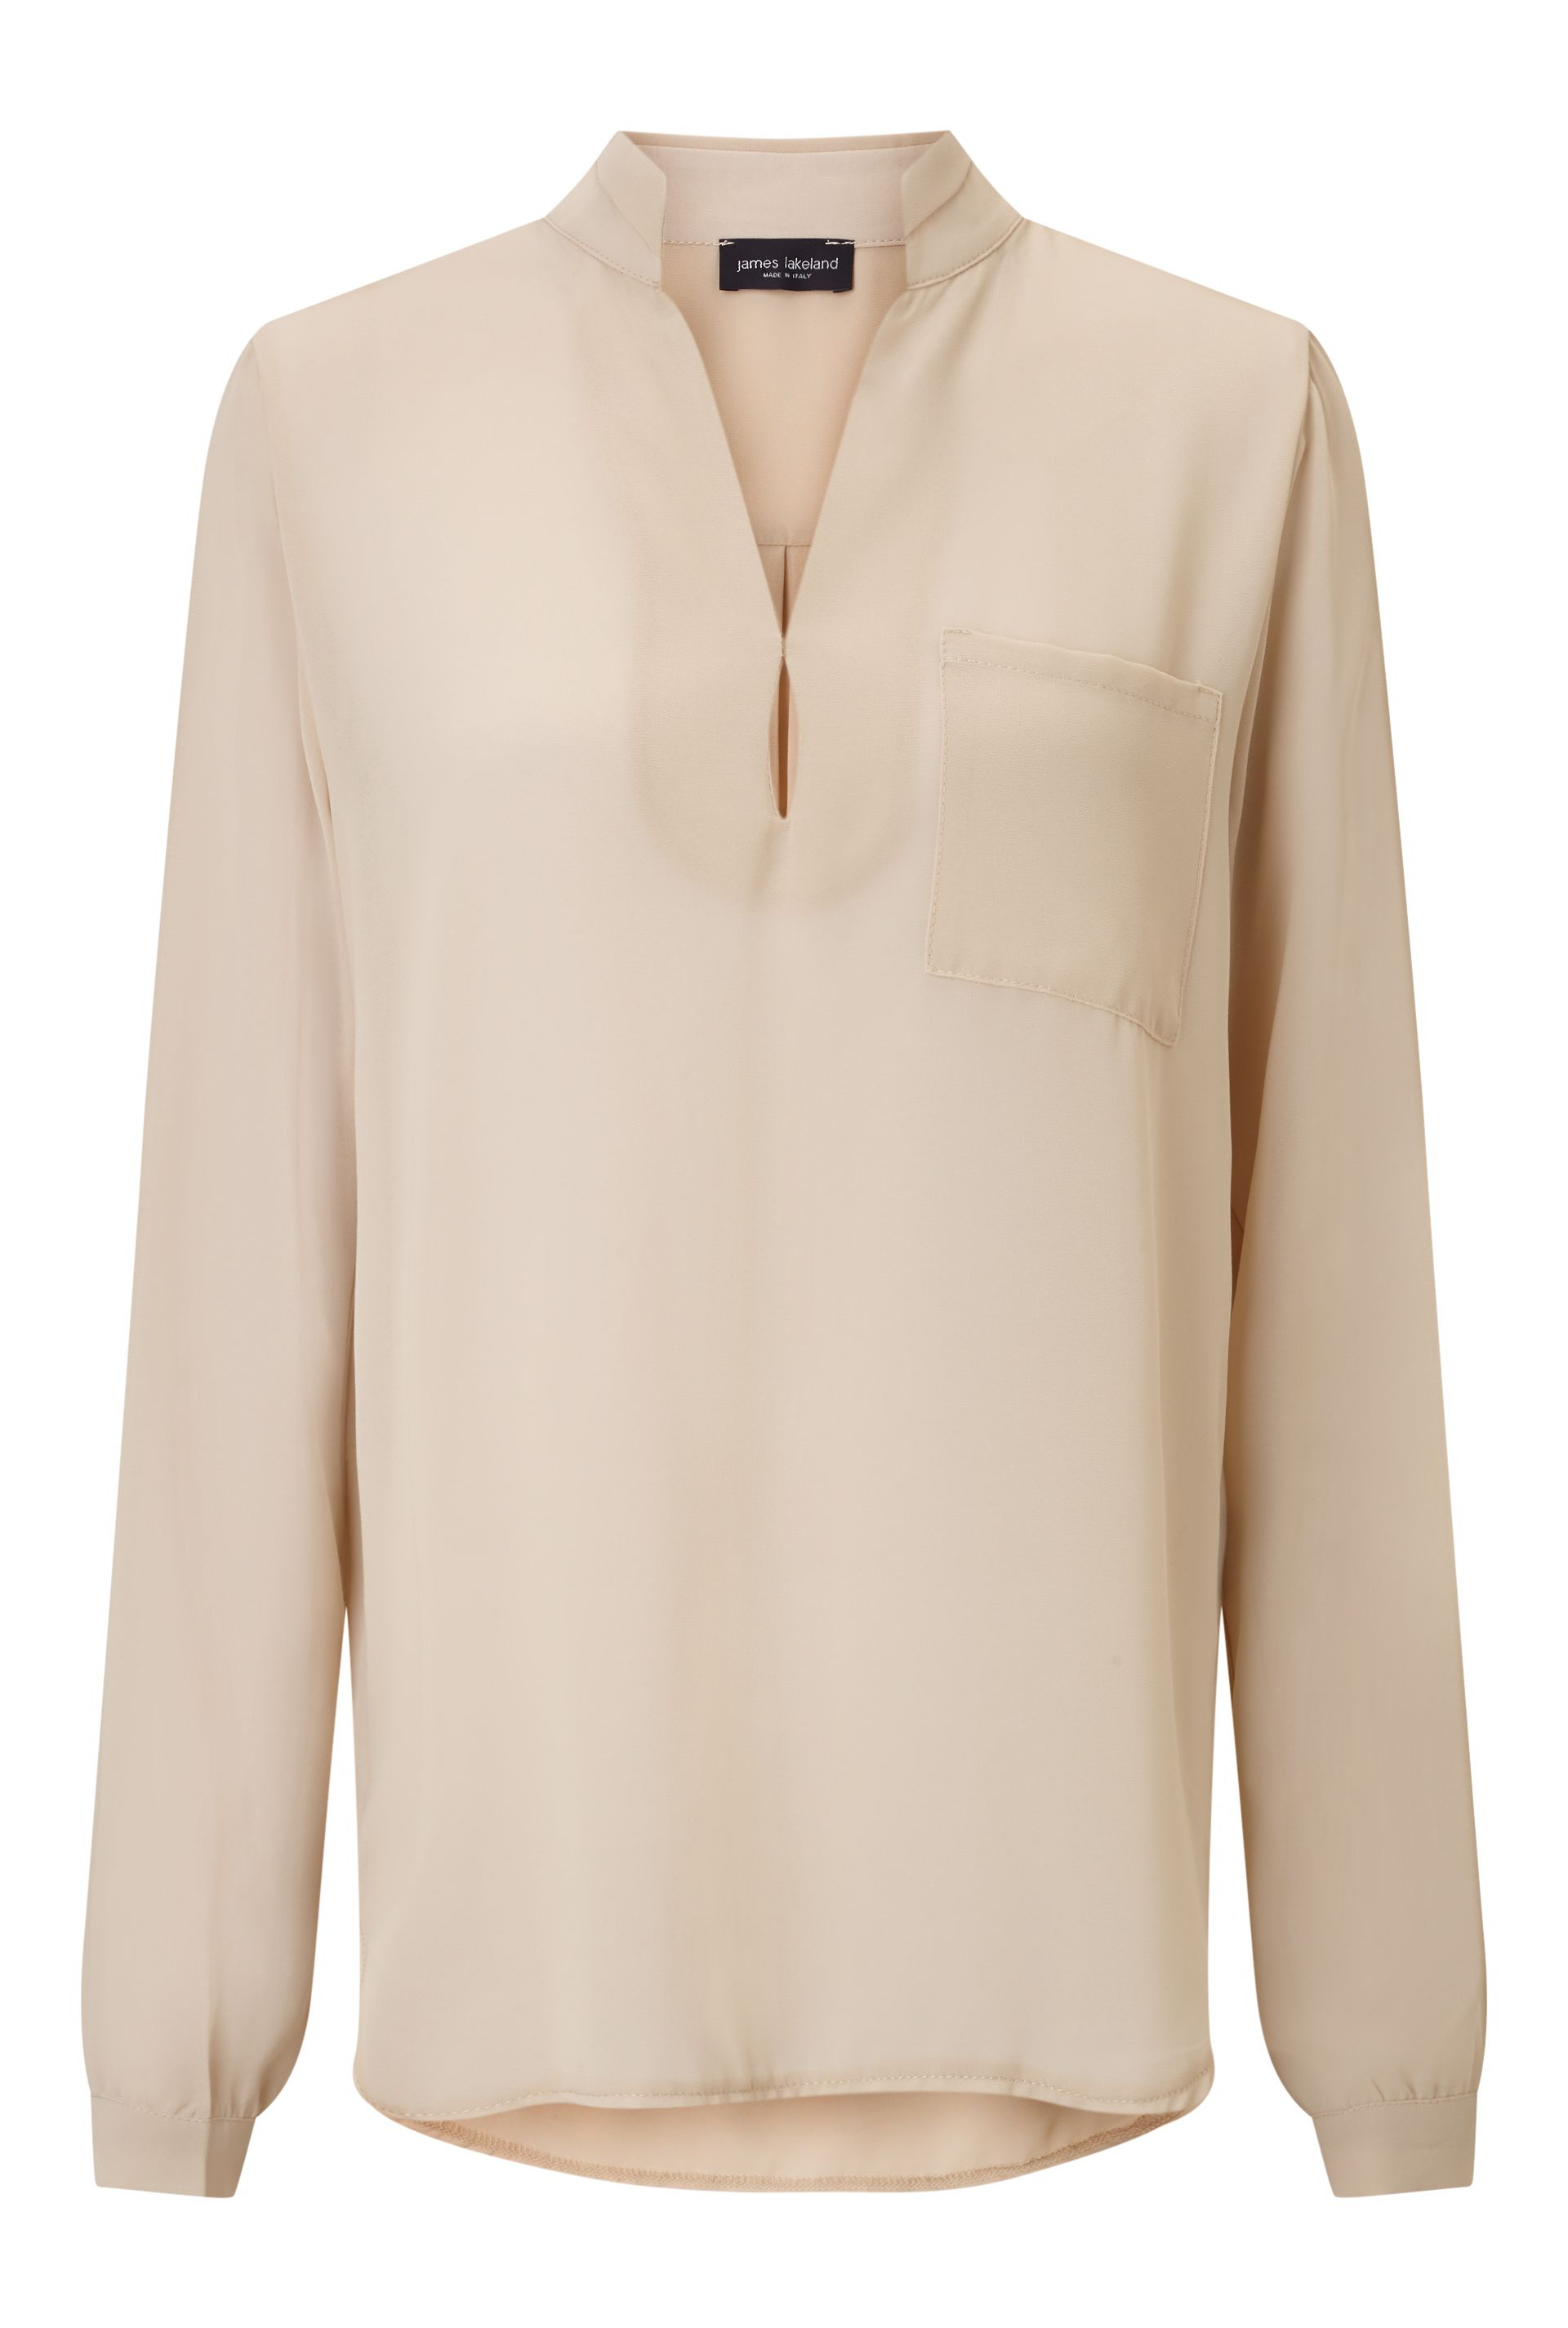 James Lakeland Long Sleeve Pockets Blouse, White